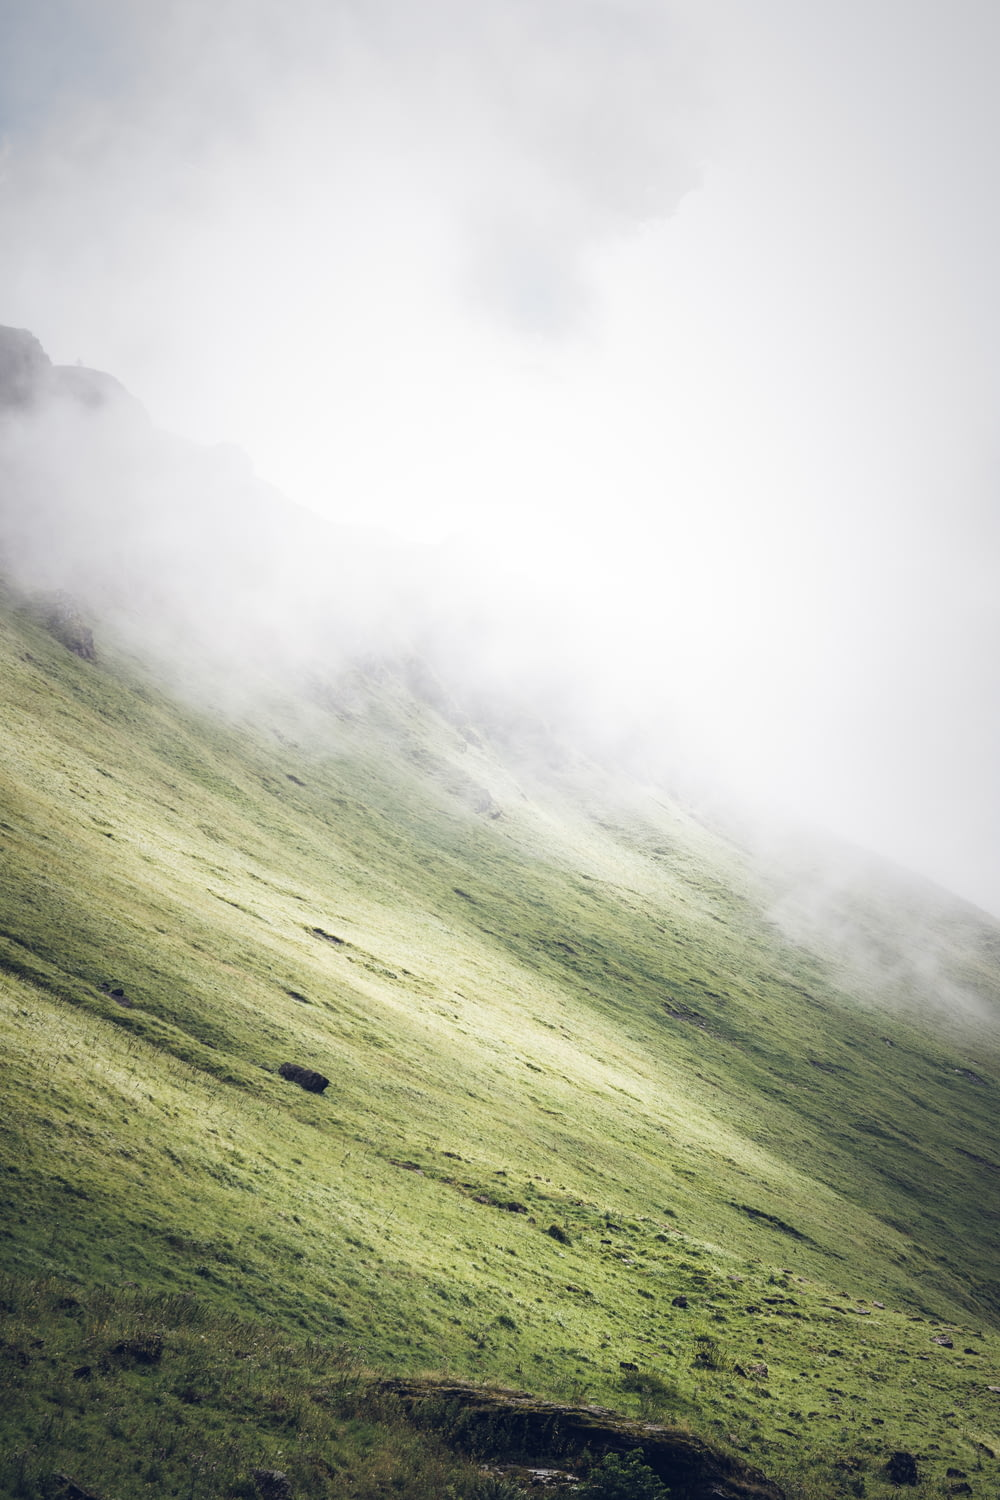 grass covered slope during foggy weather